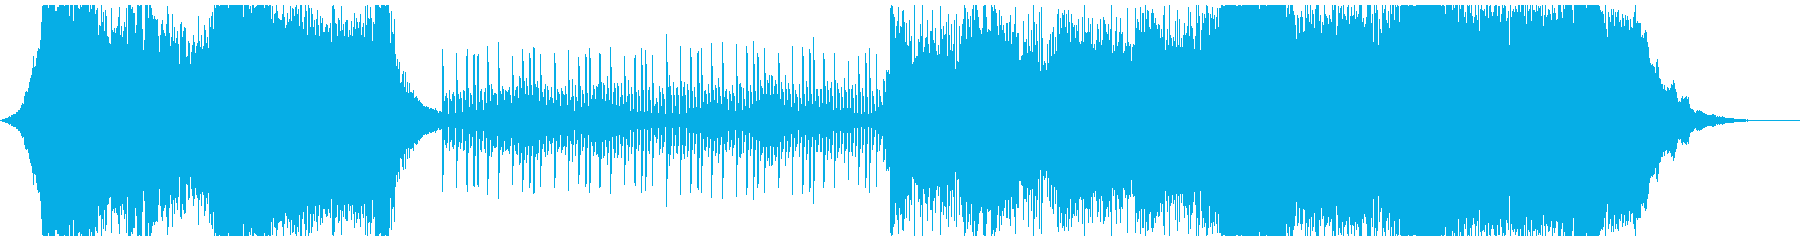 Hollywood-style orchestra's reproduced waveform